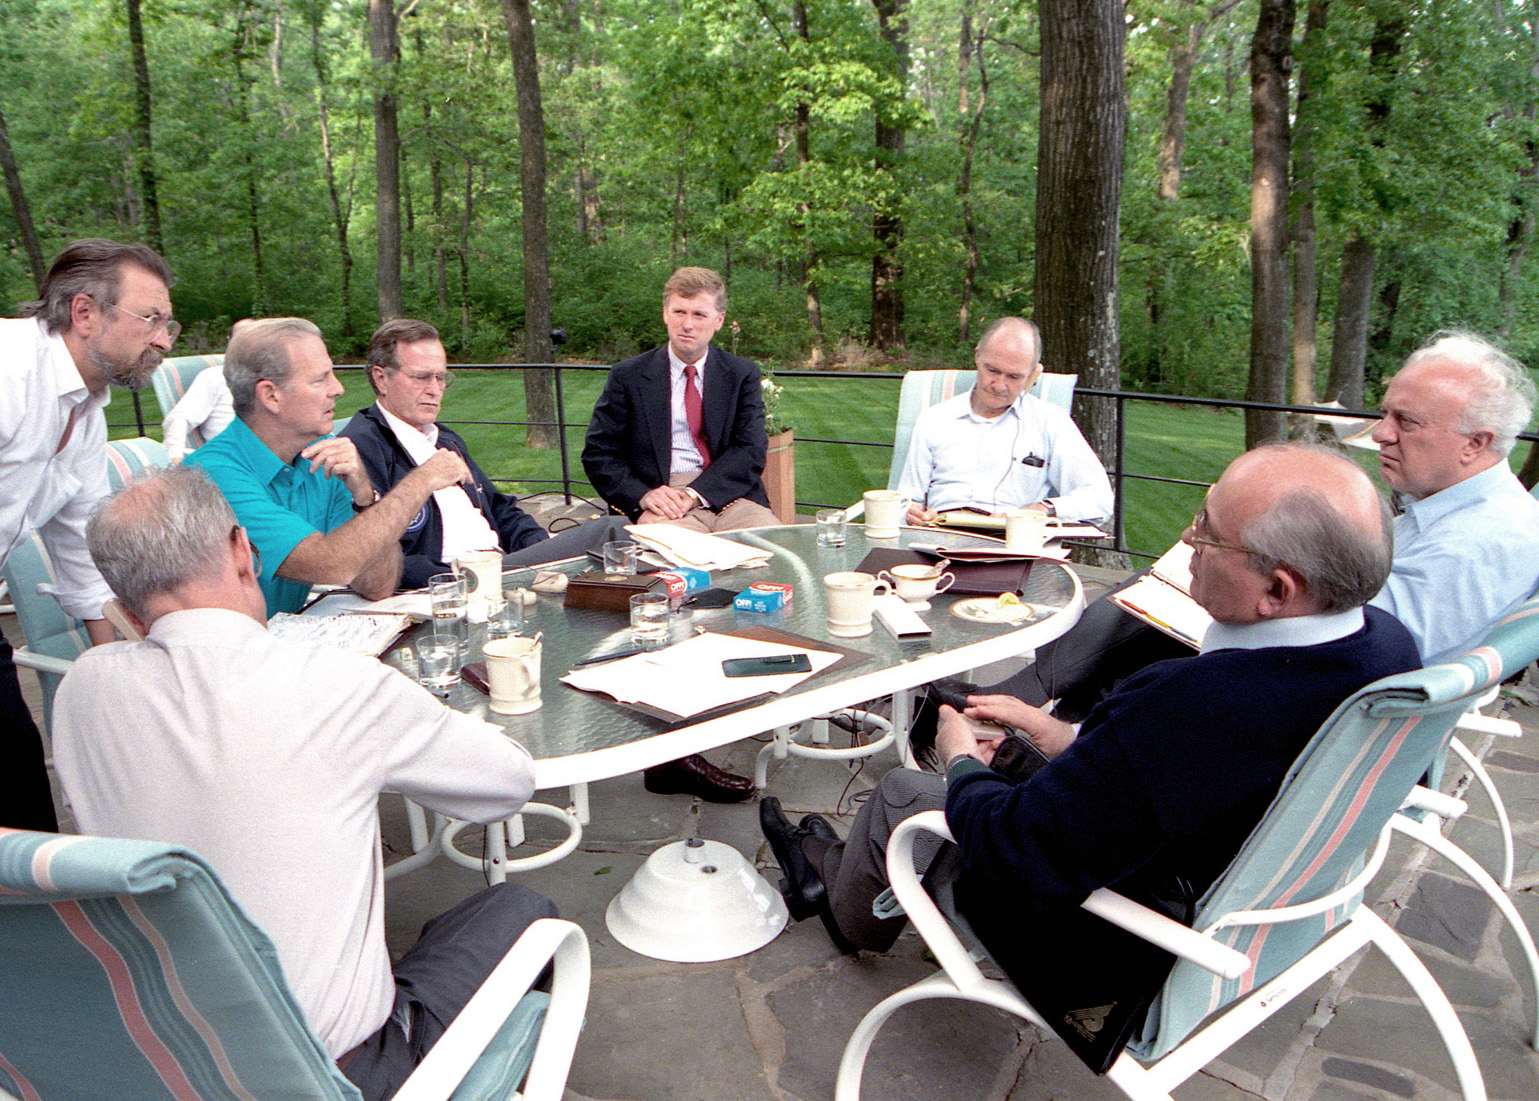 The working sessions at Camp David